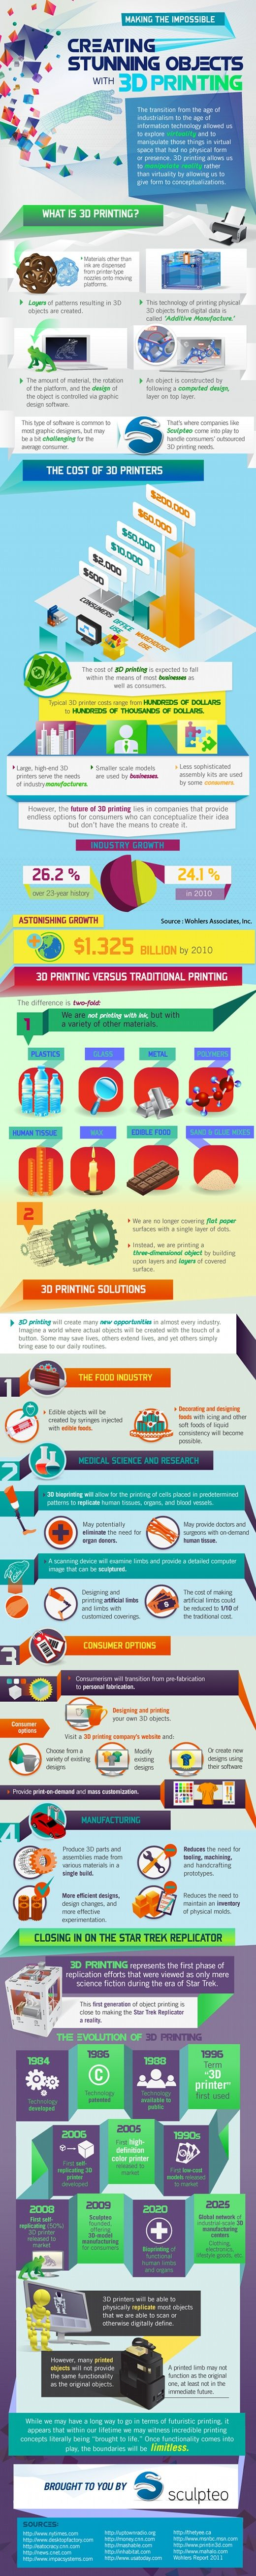 3D printing infographic explaining it all. Really great perspective of the potentials of additive manufacturing.